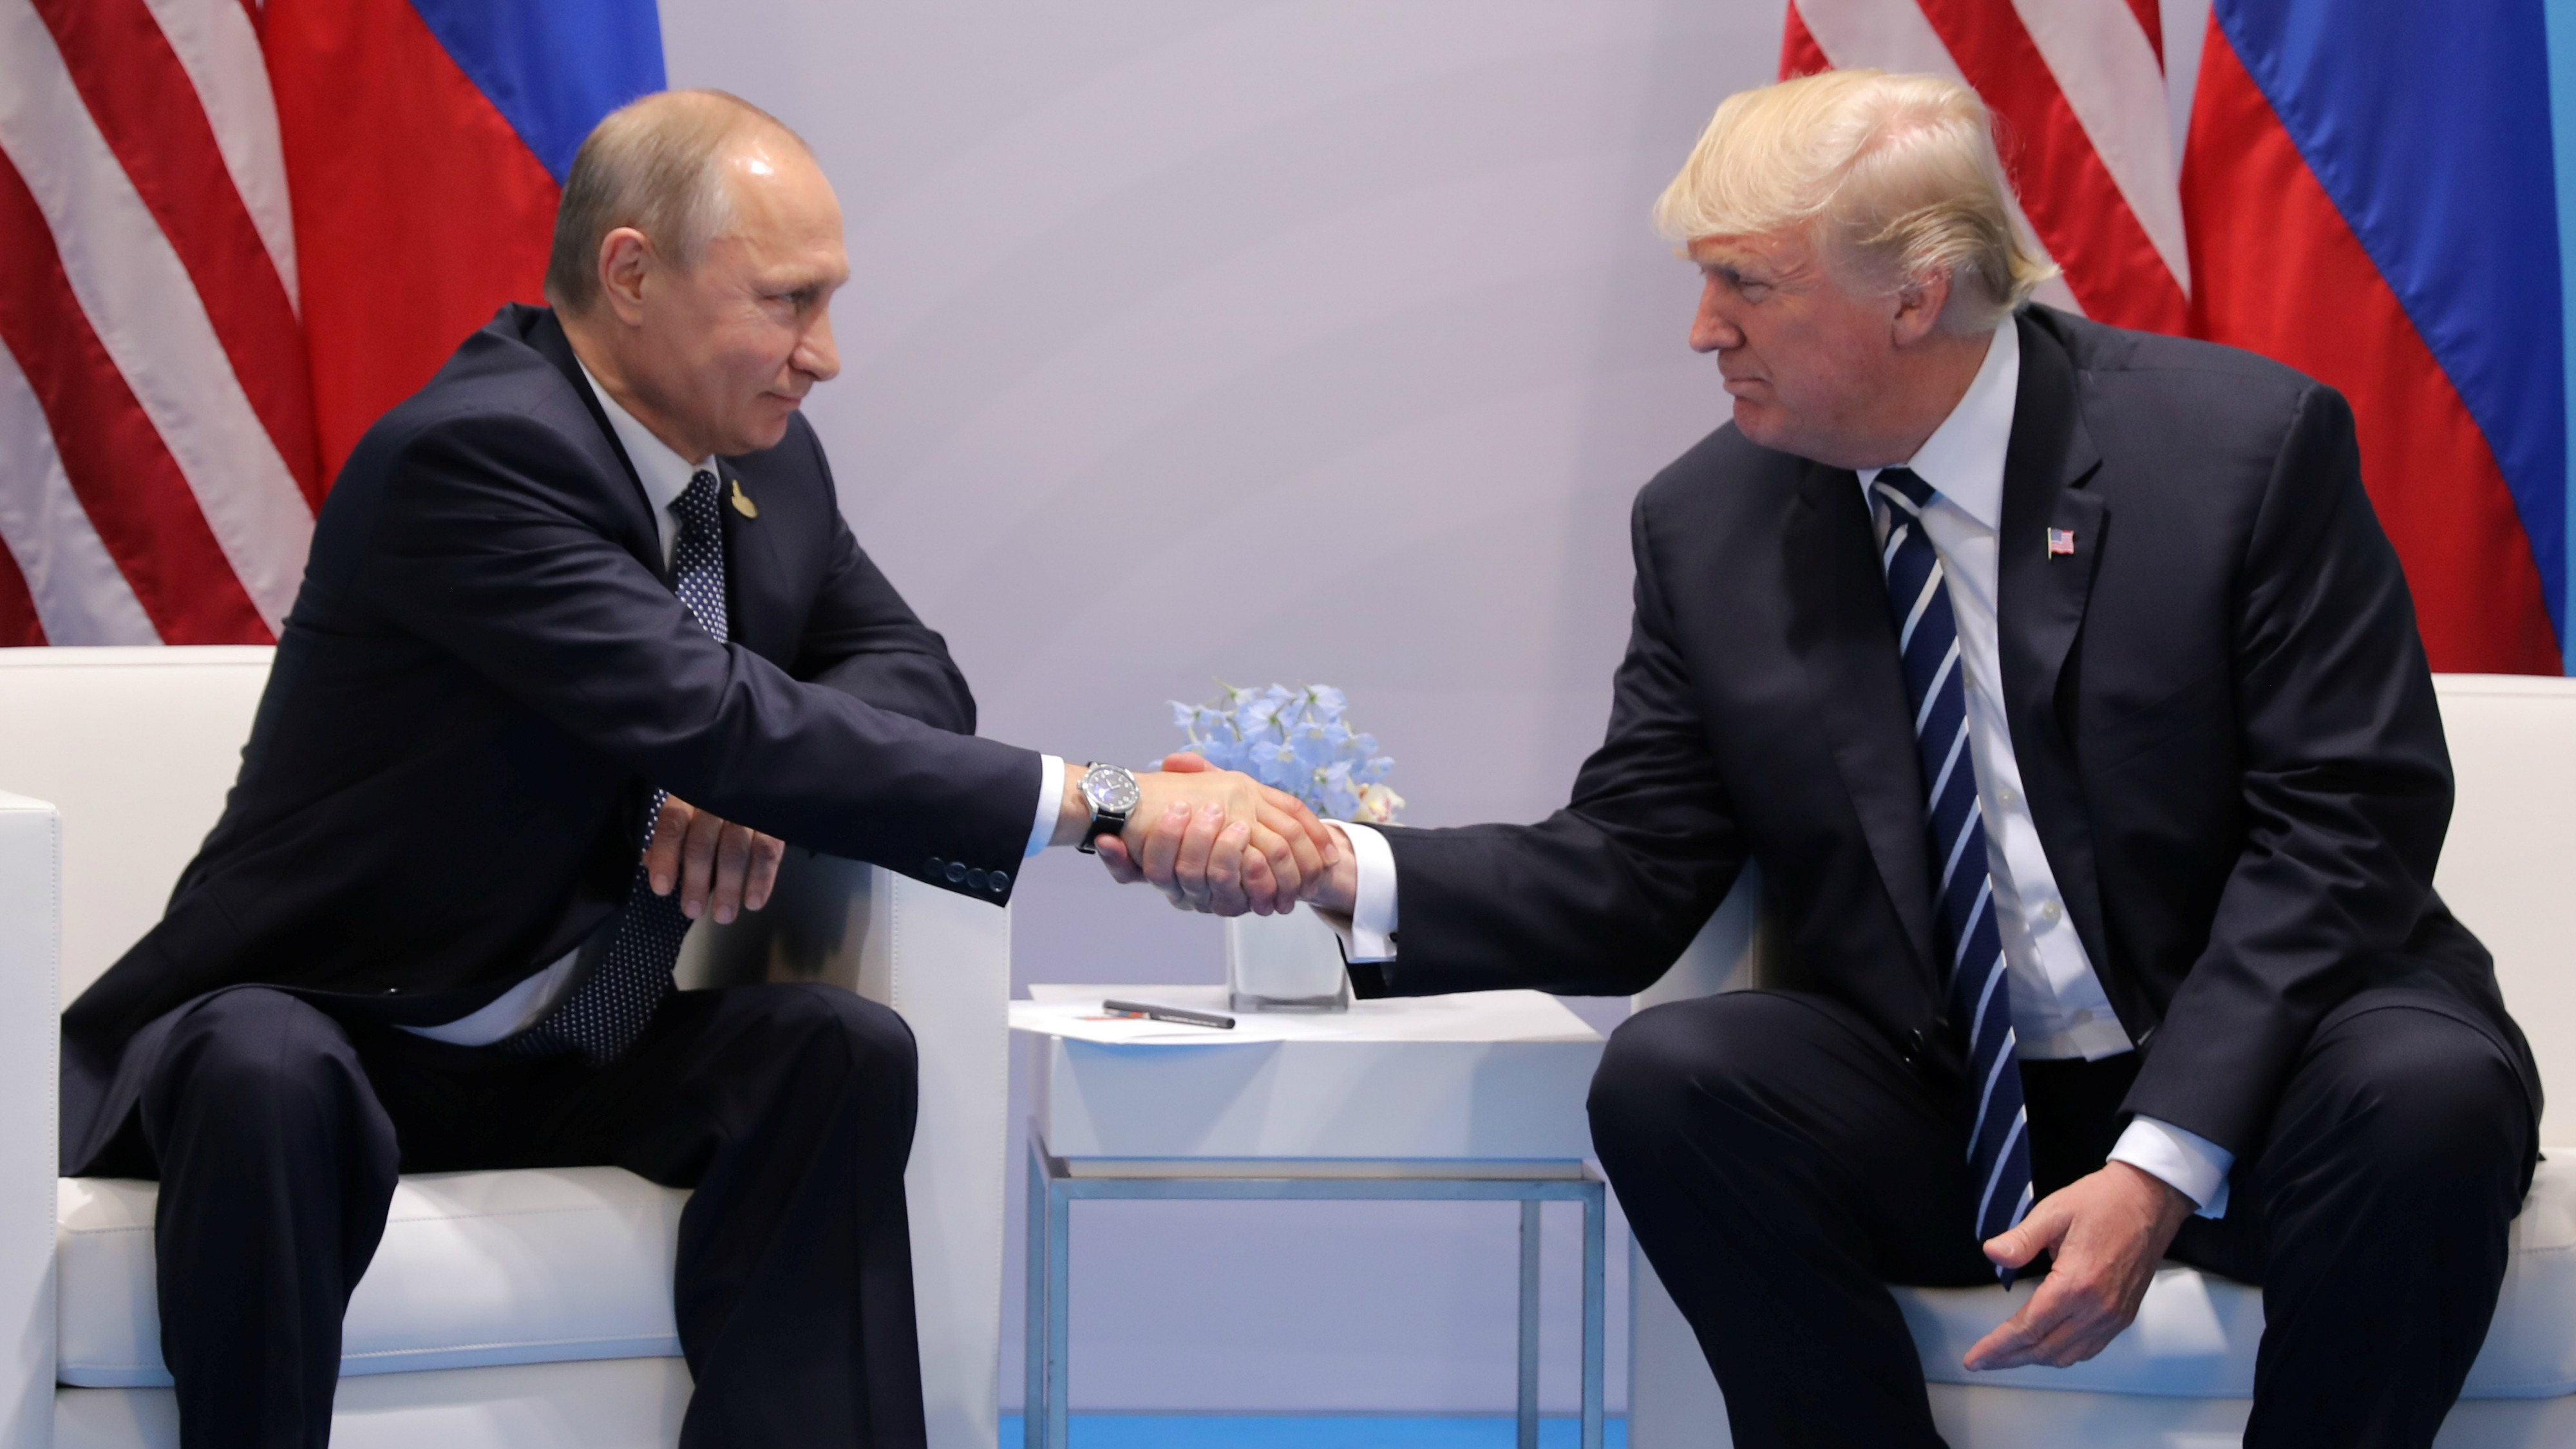 President Donald Trump shakes hands with Russian President Vladimir Putin during their bilateral meeting at the G20 summit in Hamburg, Germany, July 7, 2017.